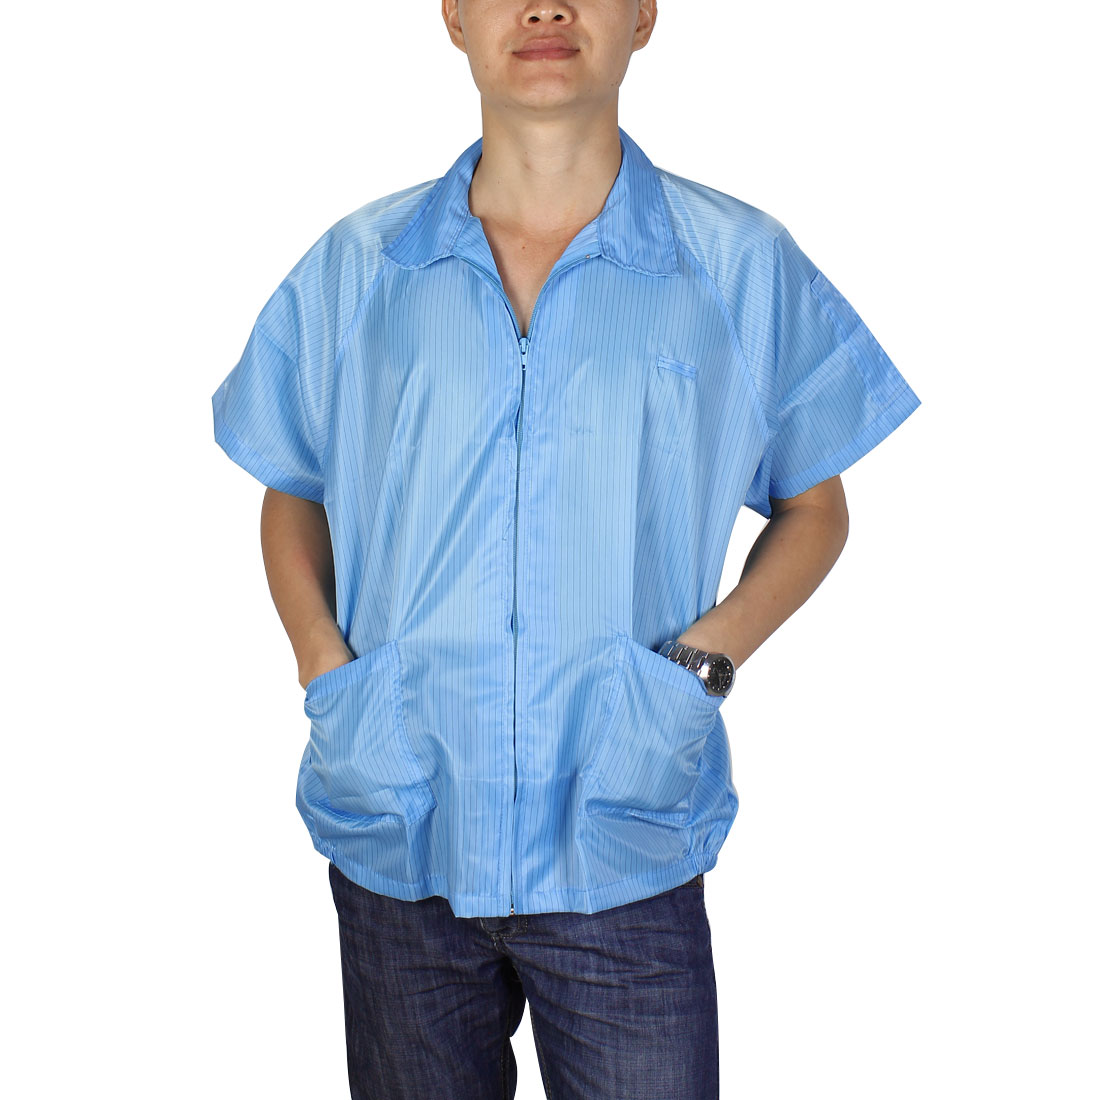 Women Men Short Sleeve Stripes Pattern Anti Static Lab Jacket Shirt Coat Blue XX Large